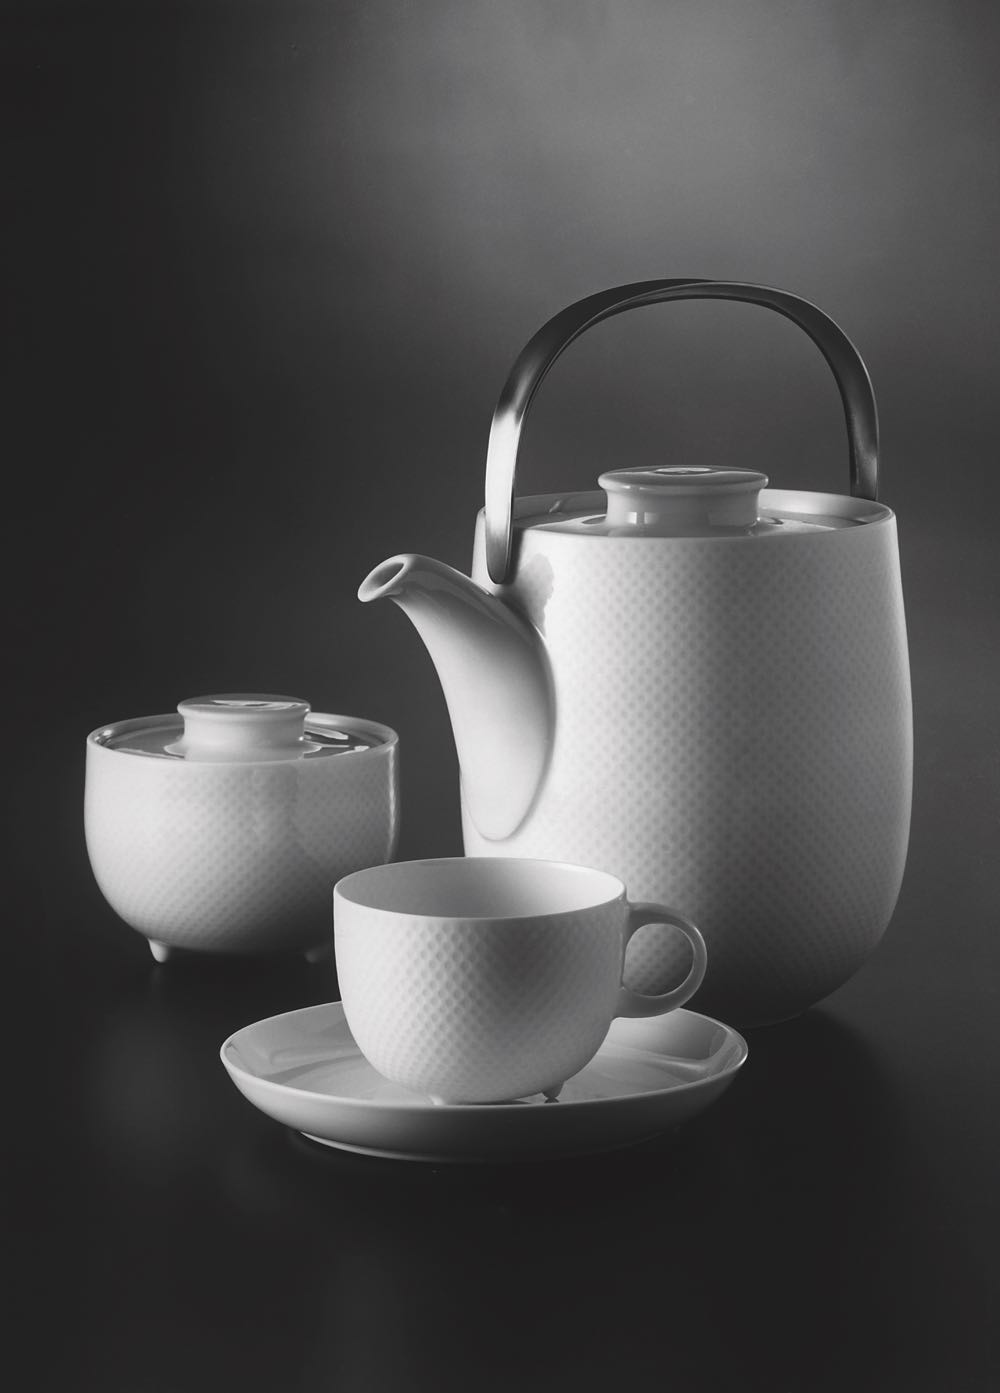 The 'Century' tea set released by Rosenthal.Photo courtesy of Rosenthal GmbH